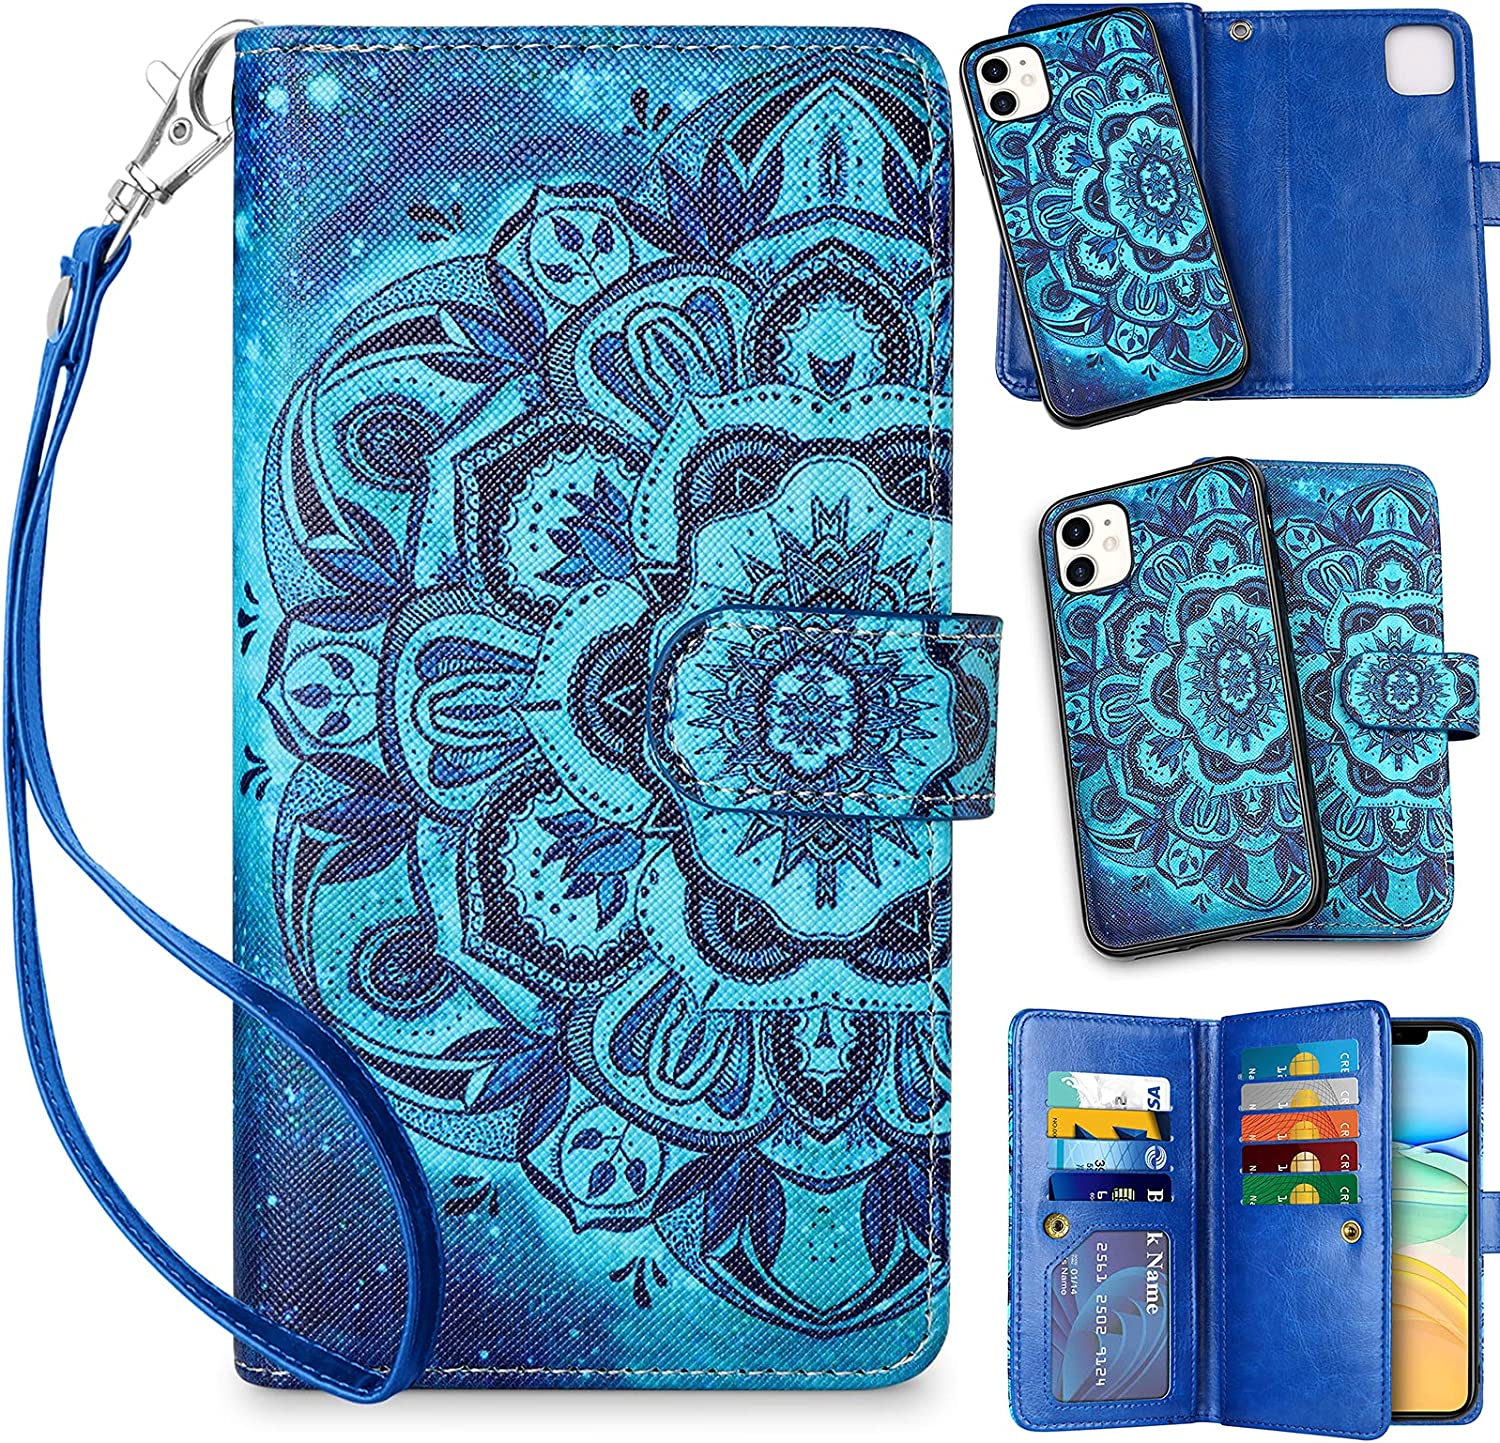 Vofolen for iPhone 11 Case with Credit Card Holder 2-in-1 Wallet ID Slot Women Girl Detachable Hybrid Protective Slim Hard Shell Magnetic PU Leather Folio Flip Cover for iPhone 11 Mandala Fantasy Blue